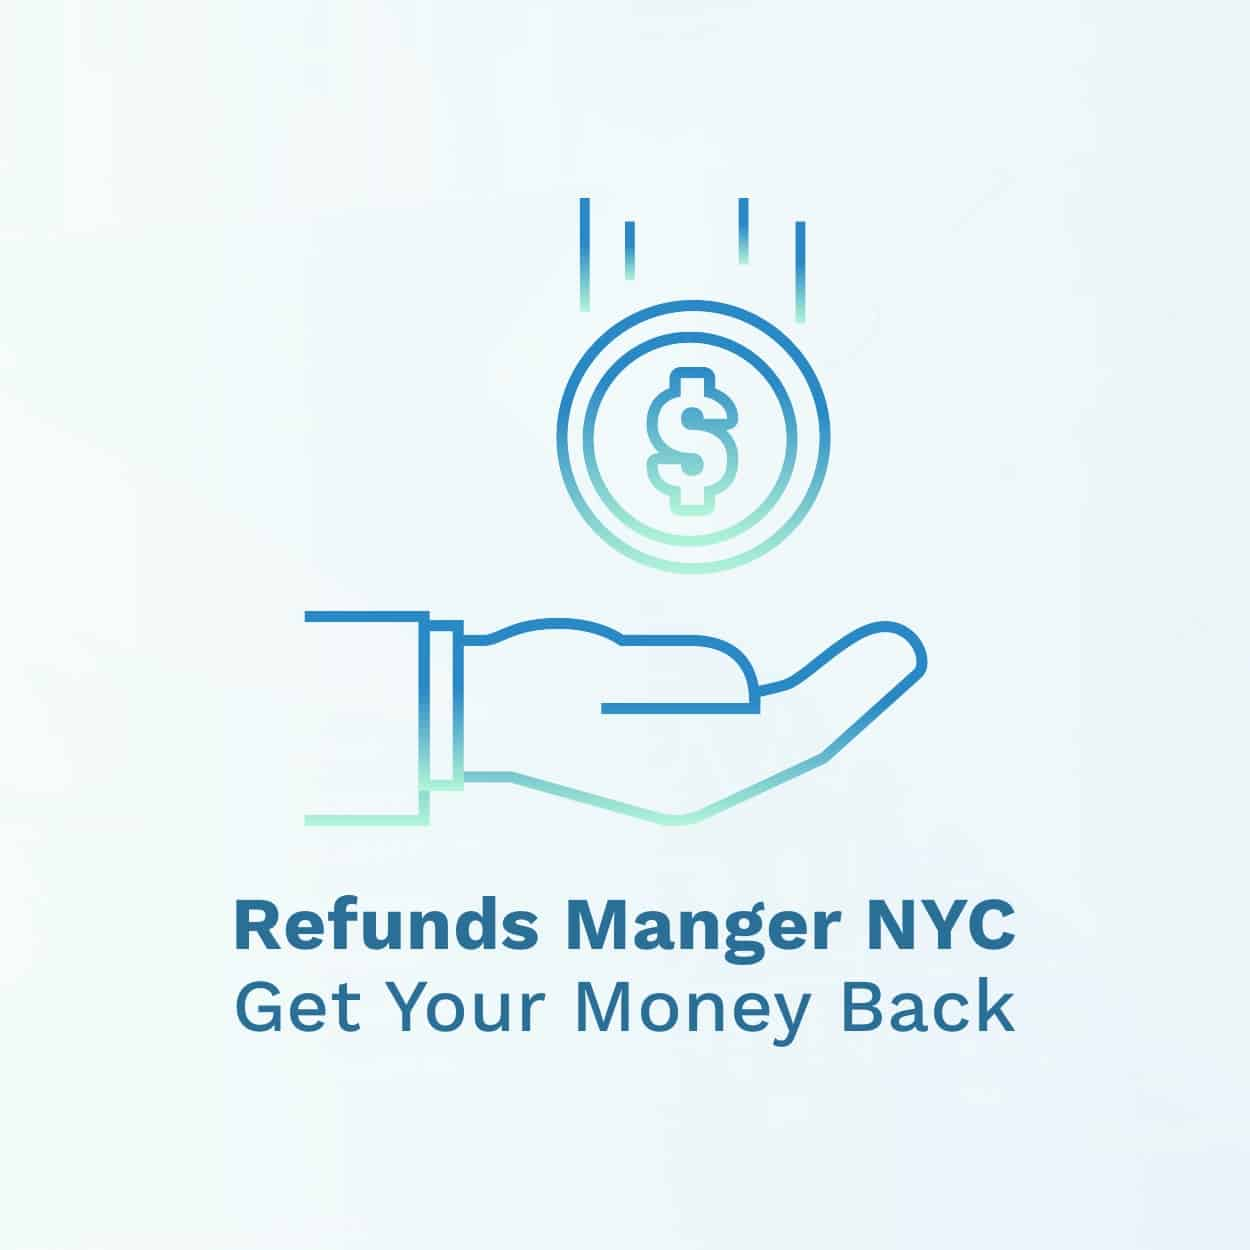 Let's Design Studio Nadia Ornstein - Refunds Manger New York - Get Your Money Back Website Design